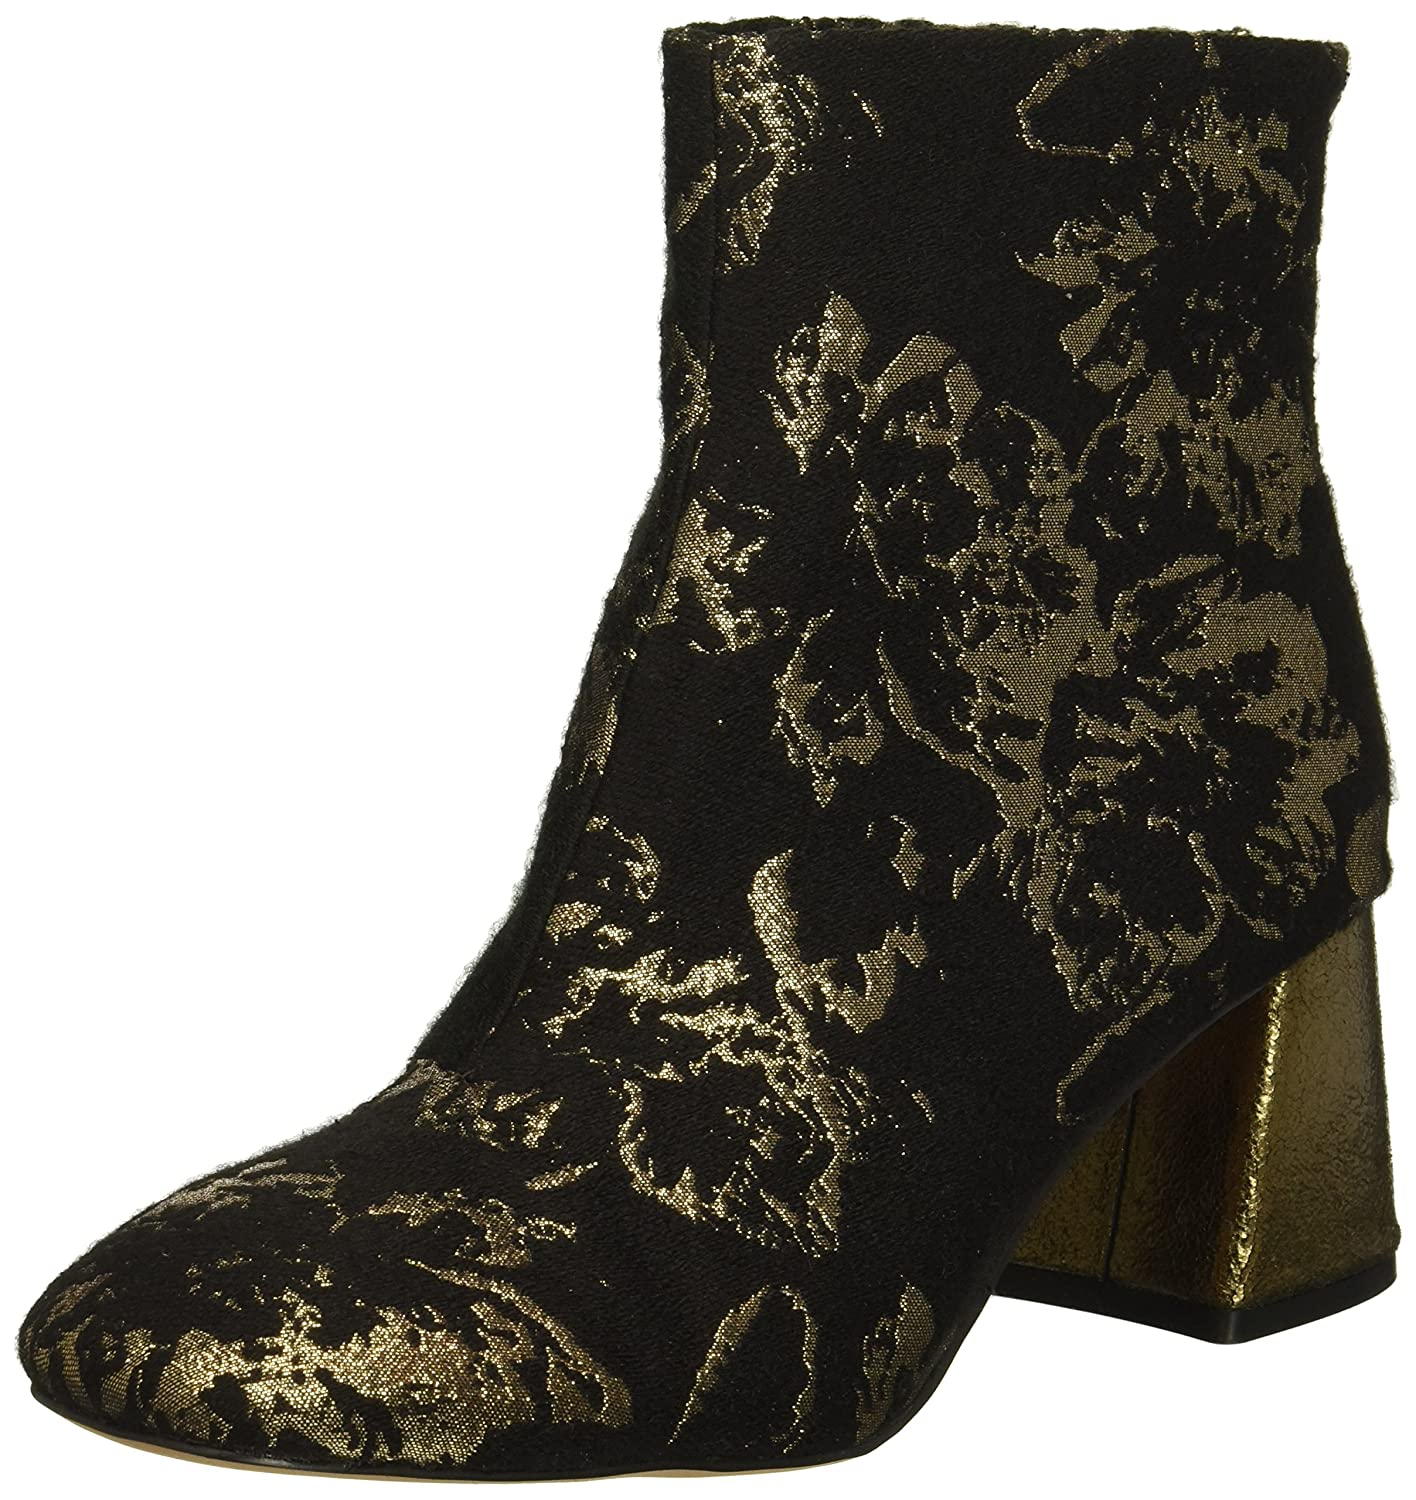 Nanette Lepore Women's Rose Fashion Boot B076DVGJCM 9 B(M) US|Black/Bronze